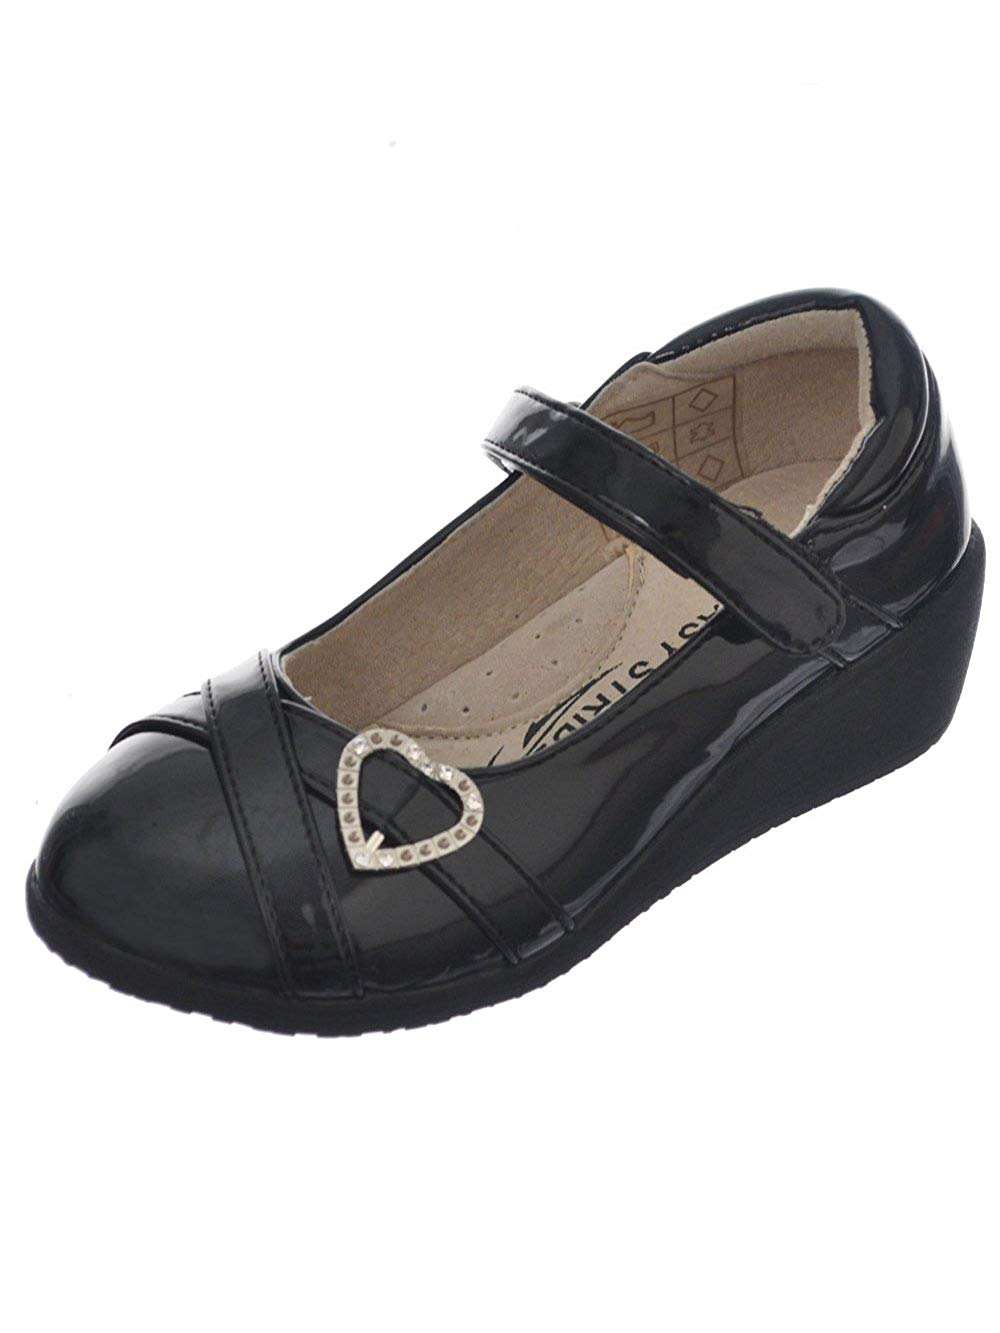 Easy Strider Girls' Patent-Strapped Heart Mary Janes